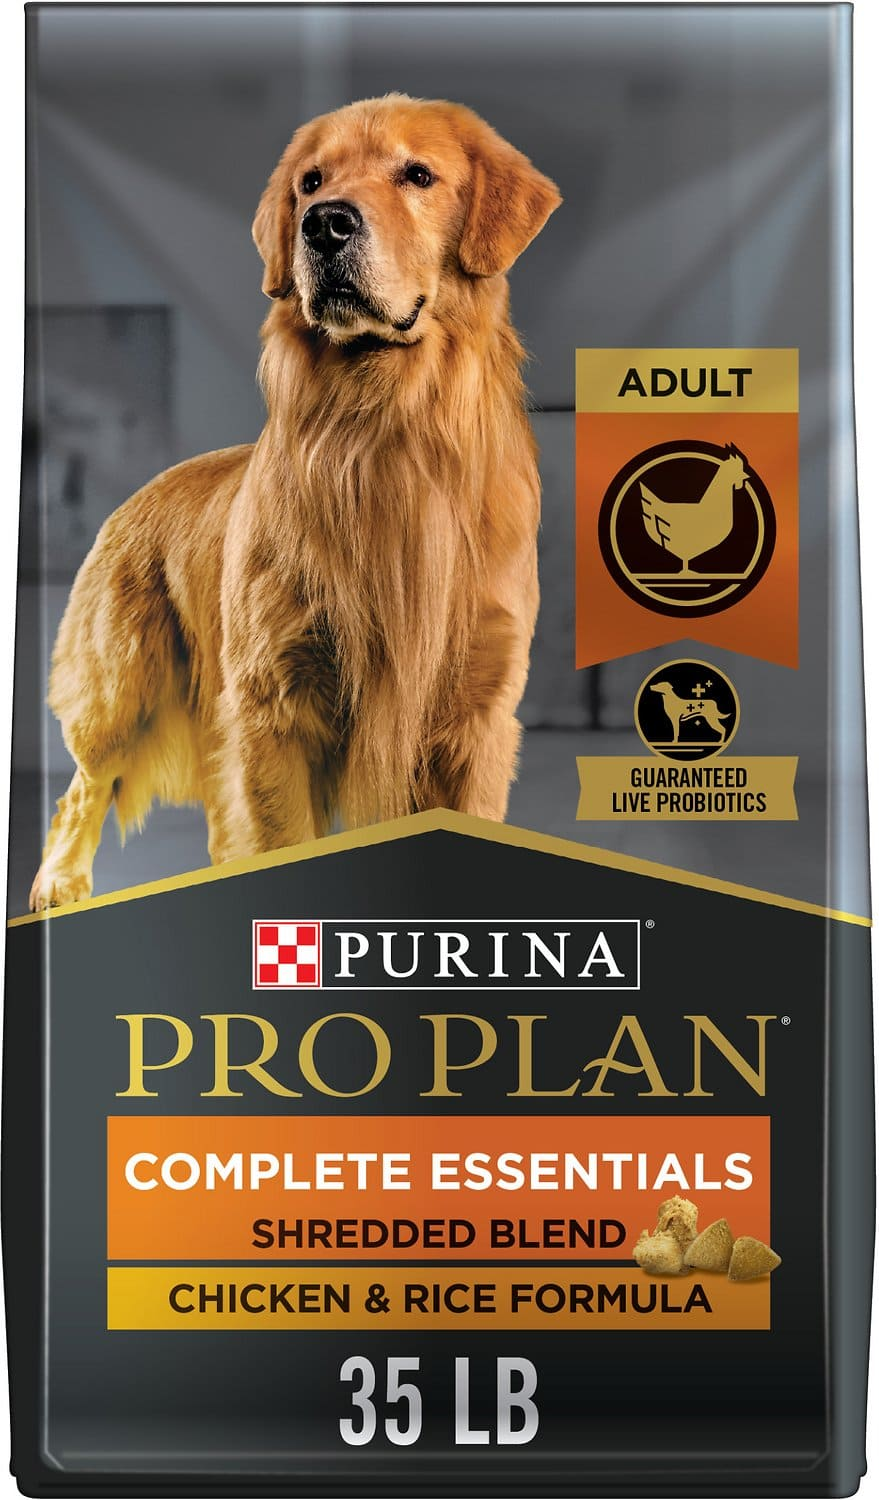 Purina Pro Plan Adult Complete Essentials Shredded Blend Formula for Dogs 35 lbs Chicken & Rice 1